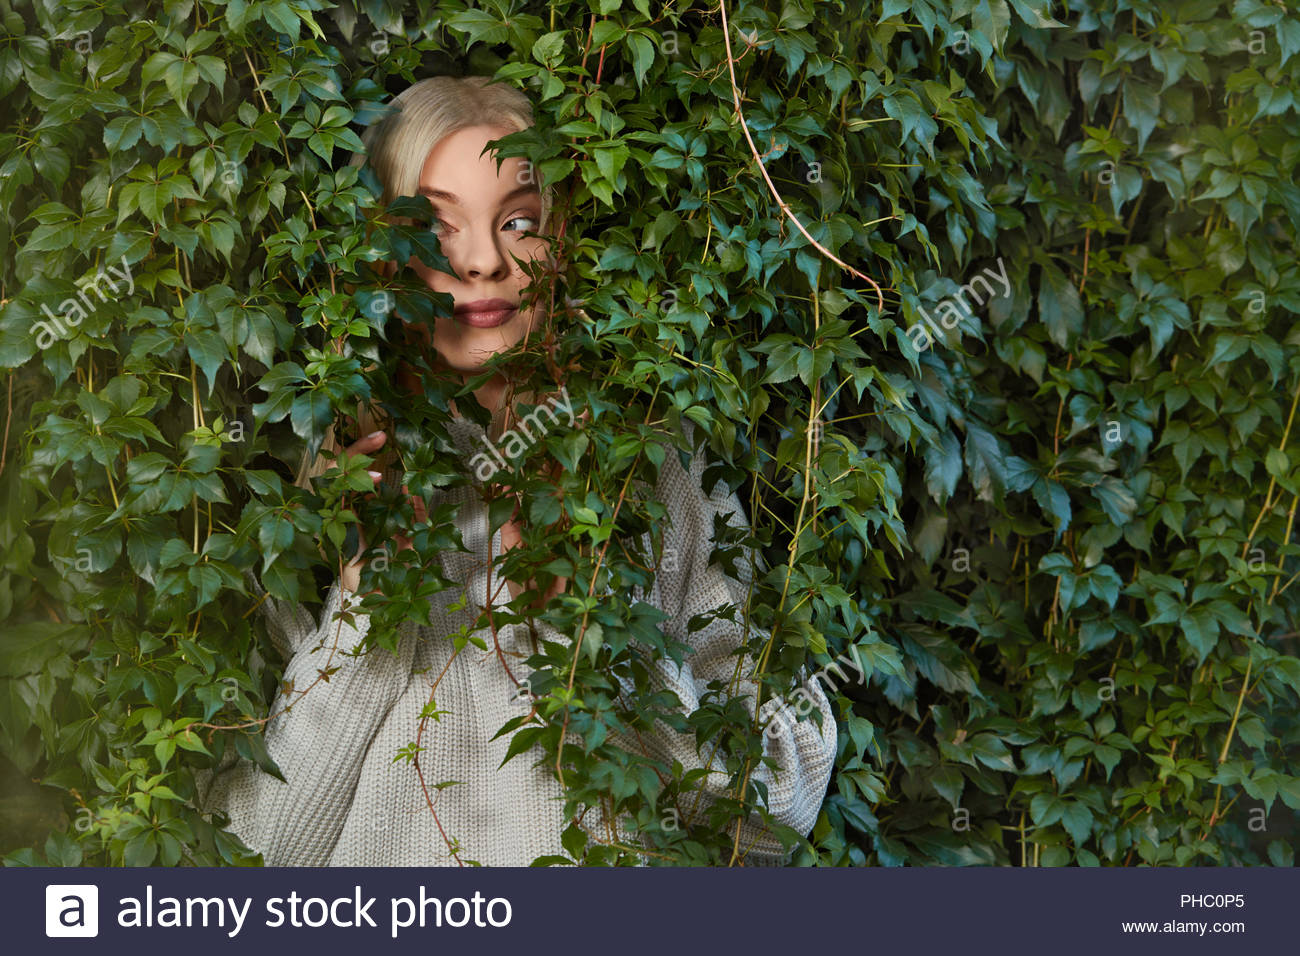 Young woman hiding in hedge. - Stock Image